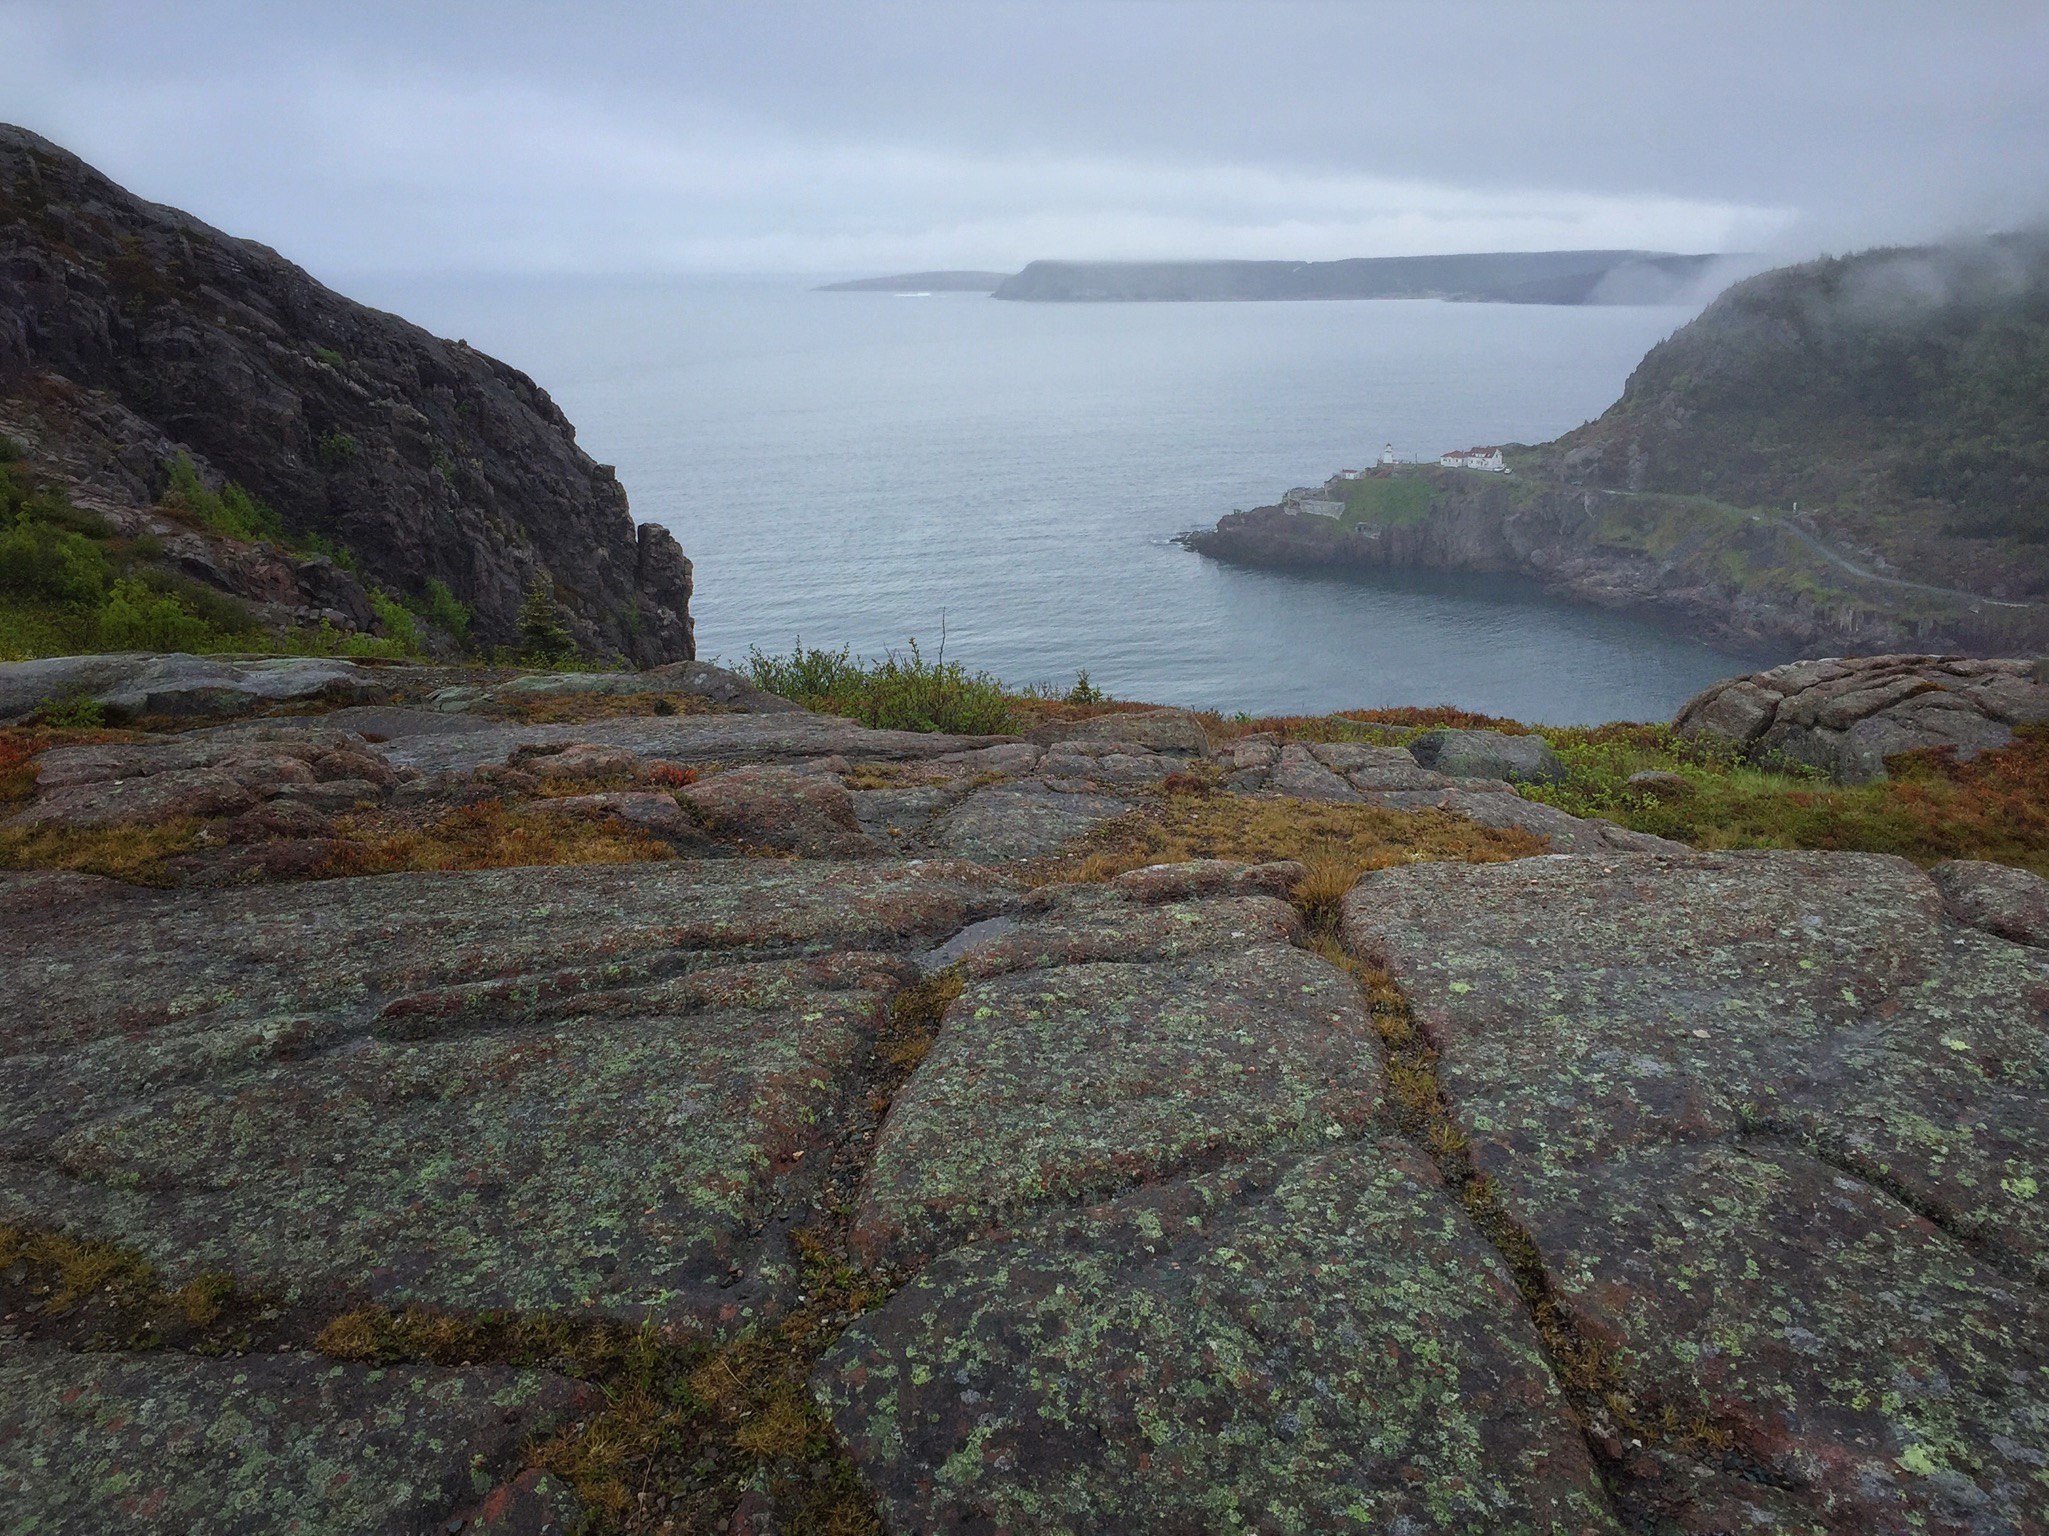 The Mouth of St. John's Harbour with Fort Amherst